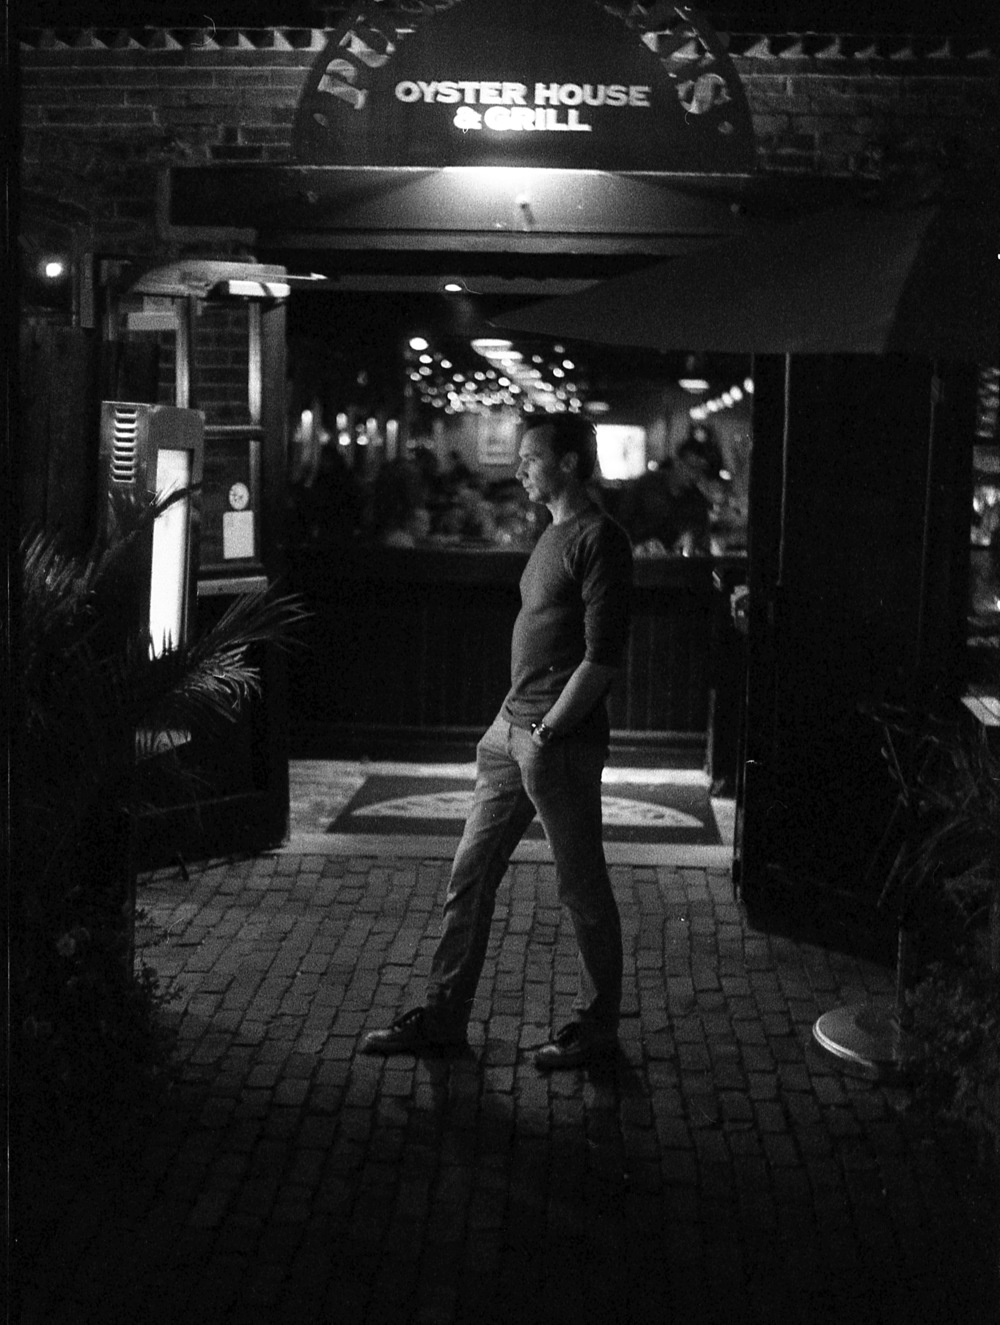 Toronto Distillery District at night; Pentax Spotmatic F, Super Takumar 50 f/1.4, Ilford Delta 3200 @ ISO 3200